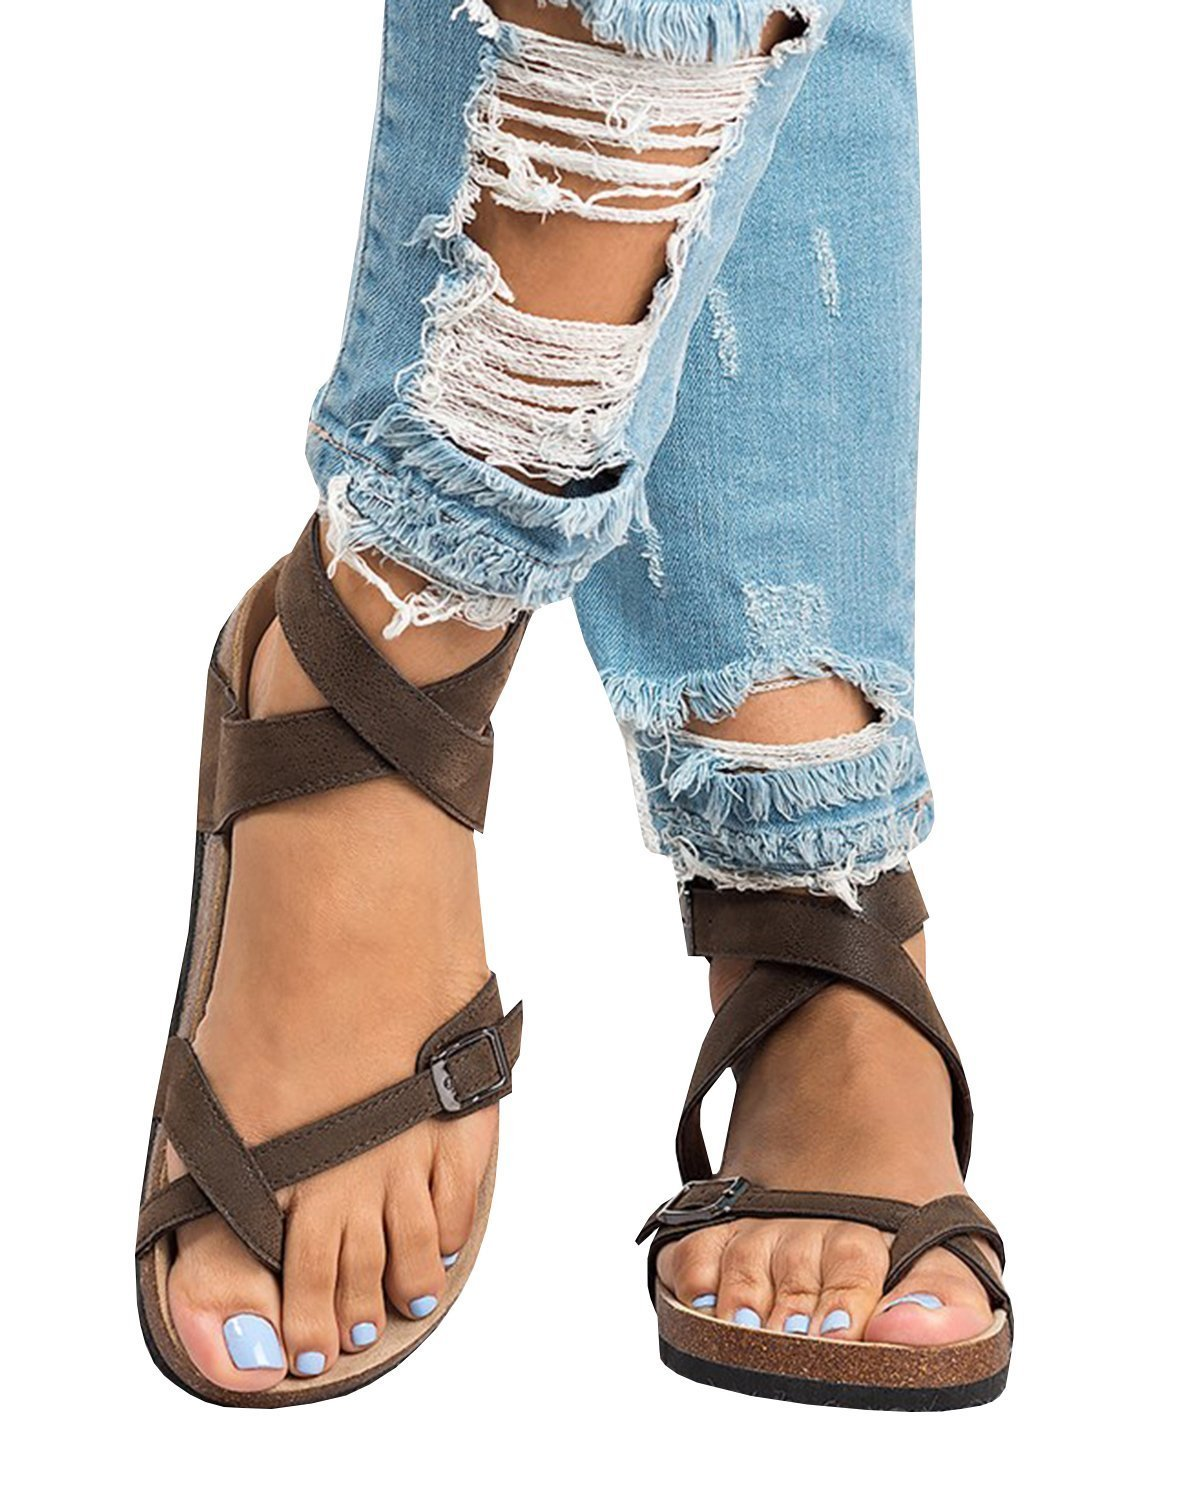 Womens Summer Sandals Flat Ankle Buckle Criss Cross Gladiator Thong Flip Flop Casual Shoes Brown 9.5 US